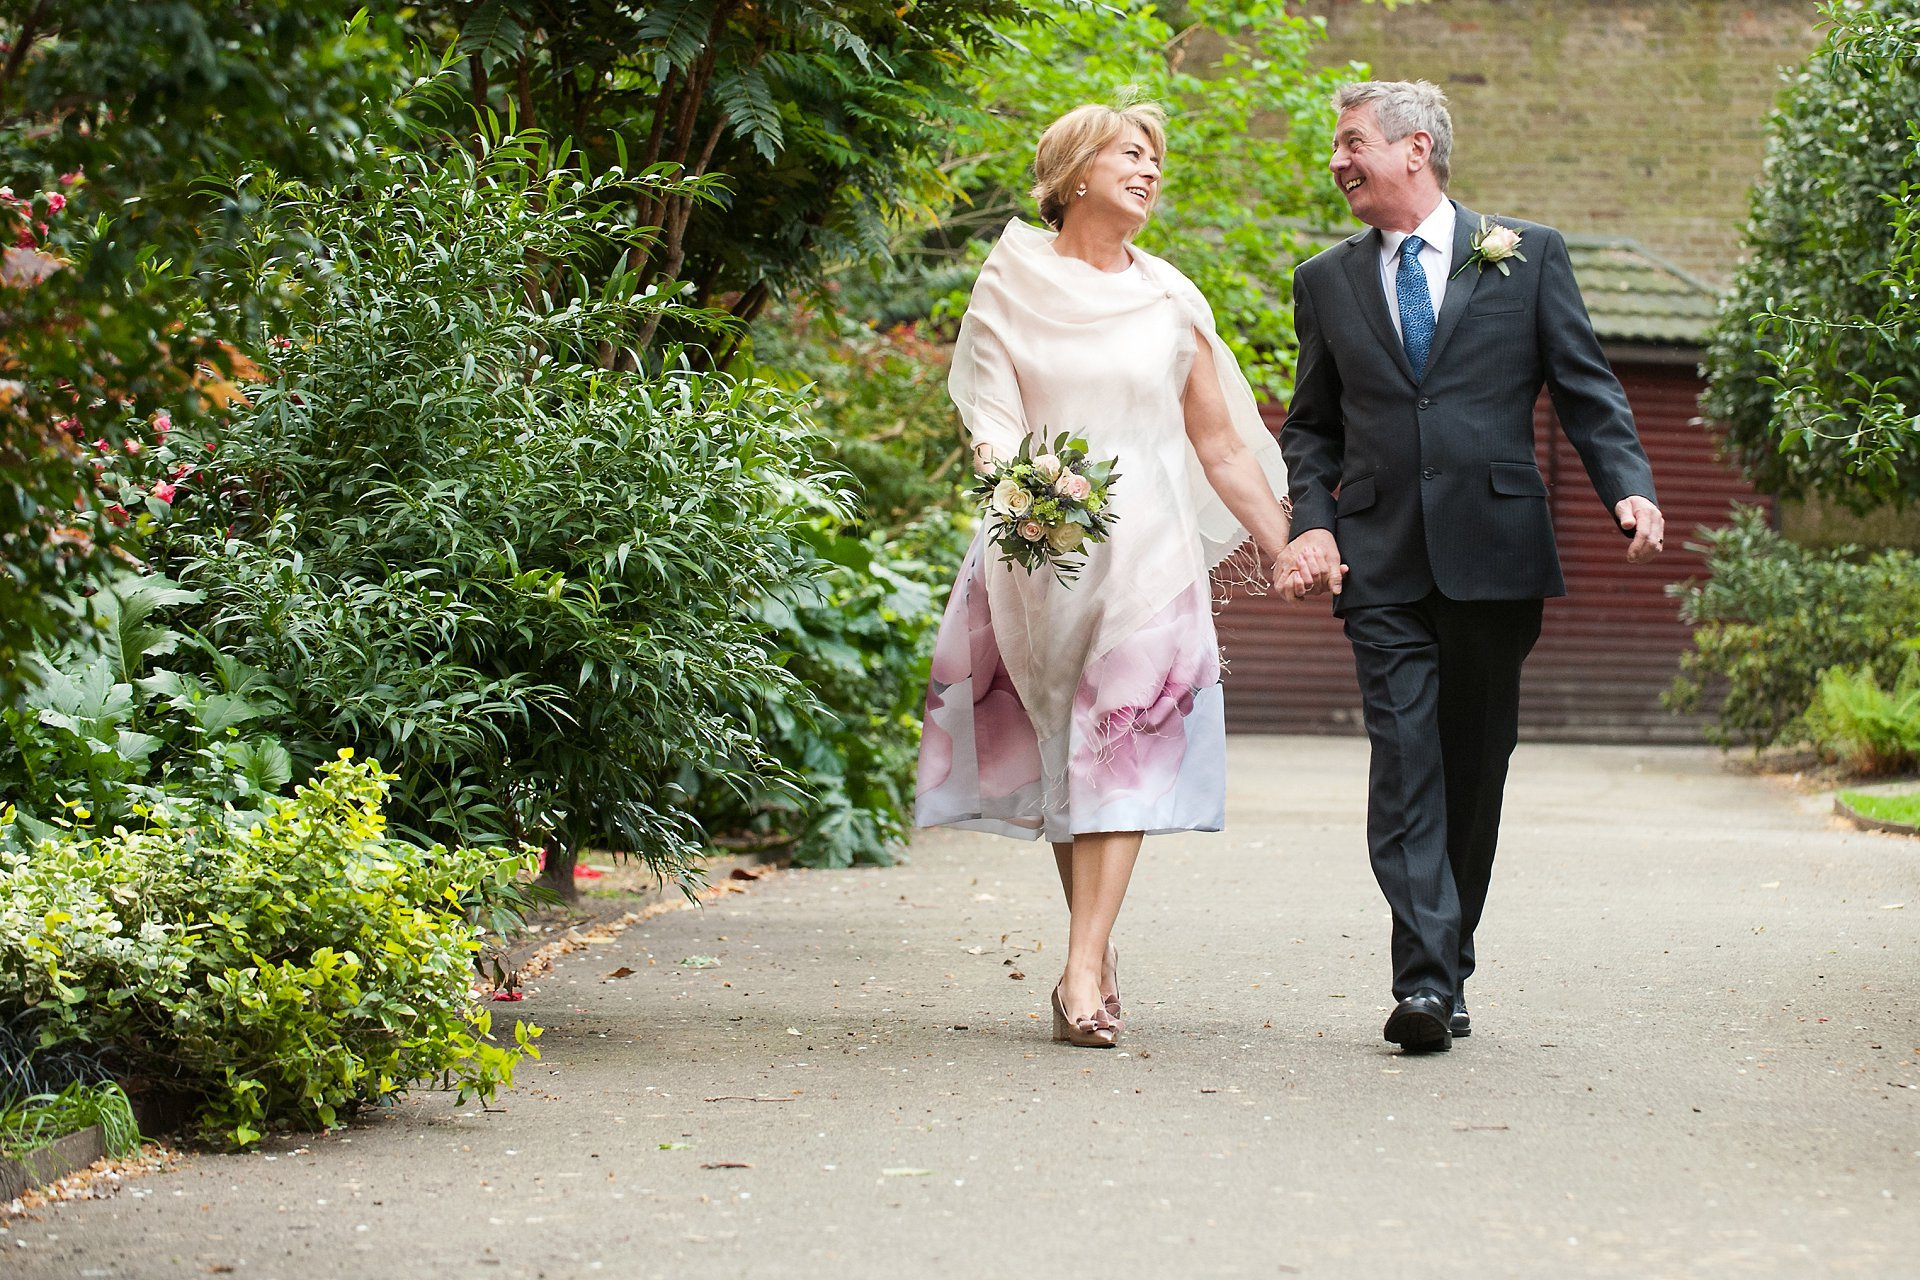 Bride & groom celebrate their Mayfair Library wedding in Mount Street Gardens